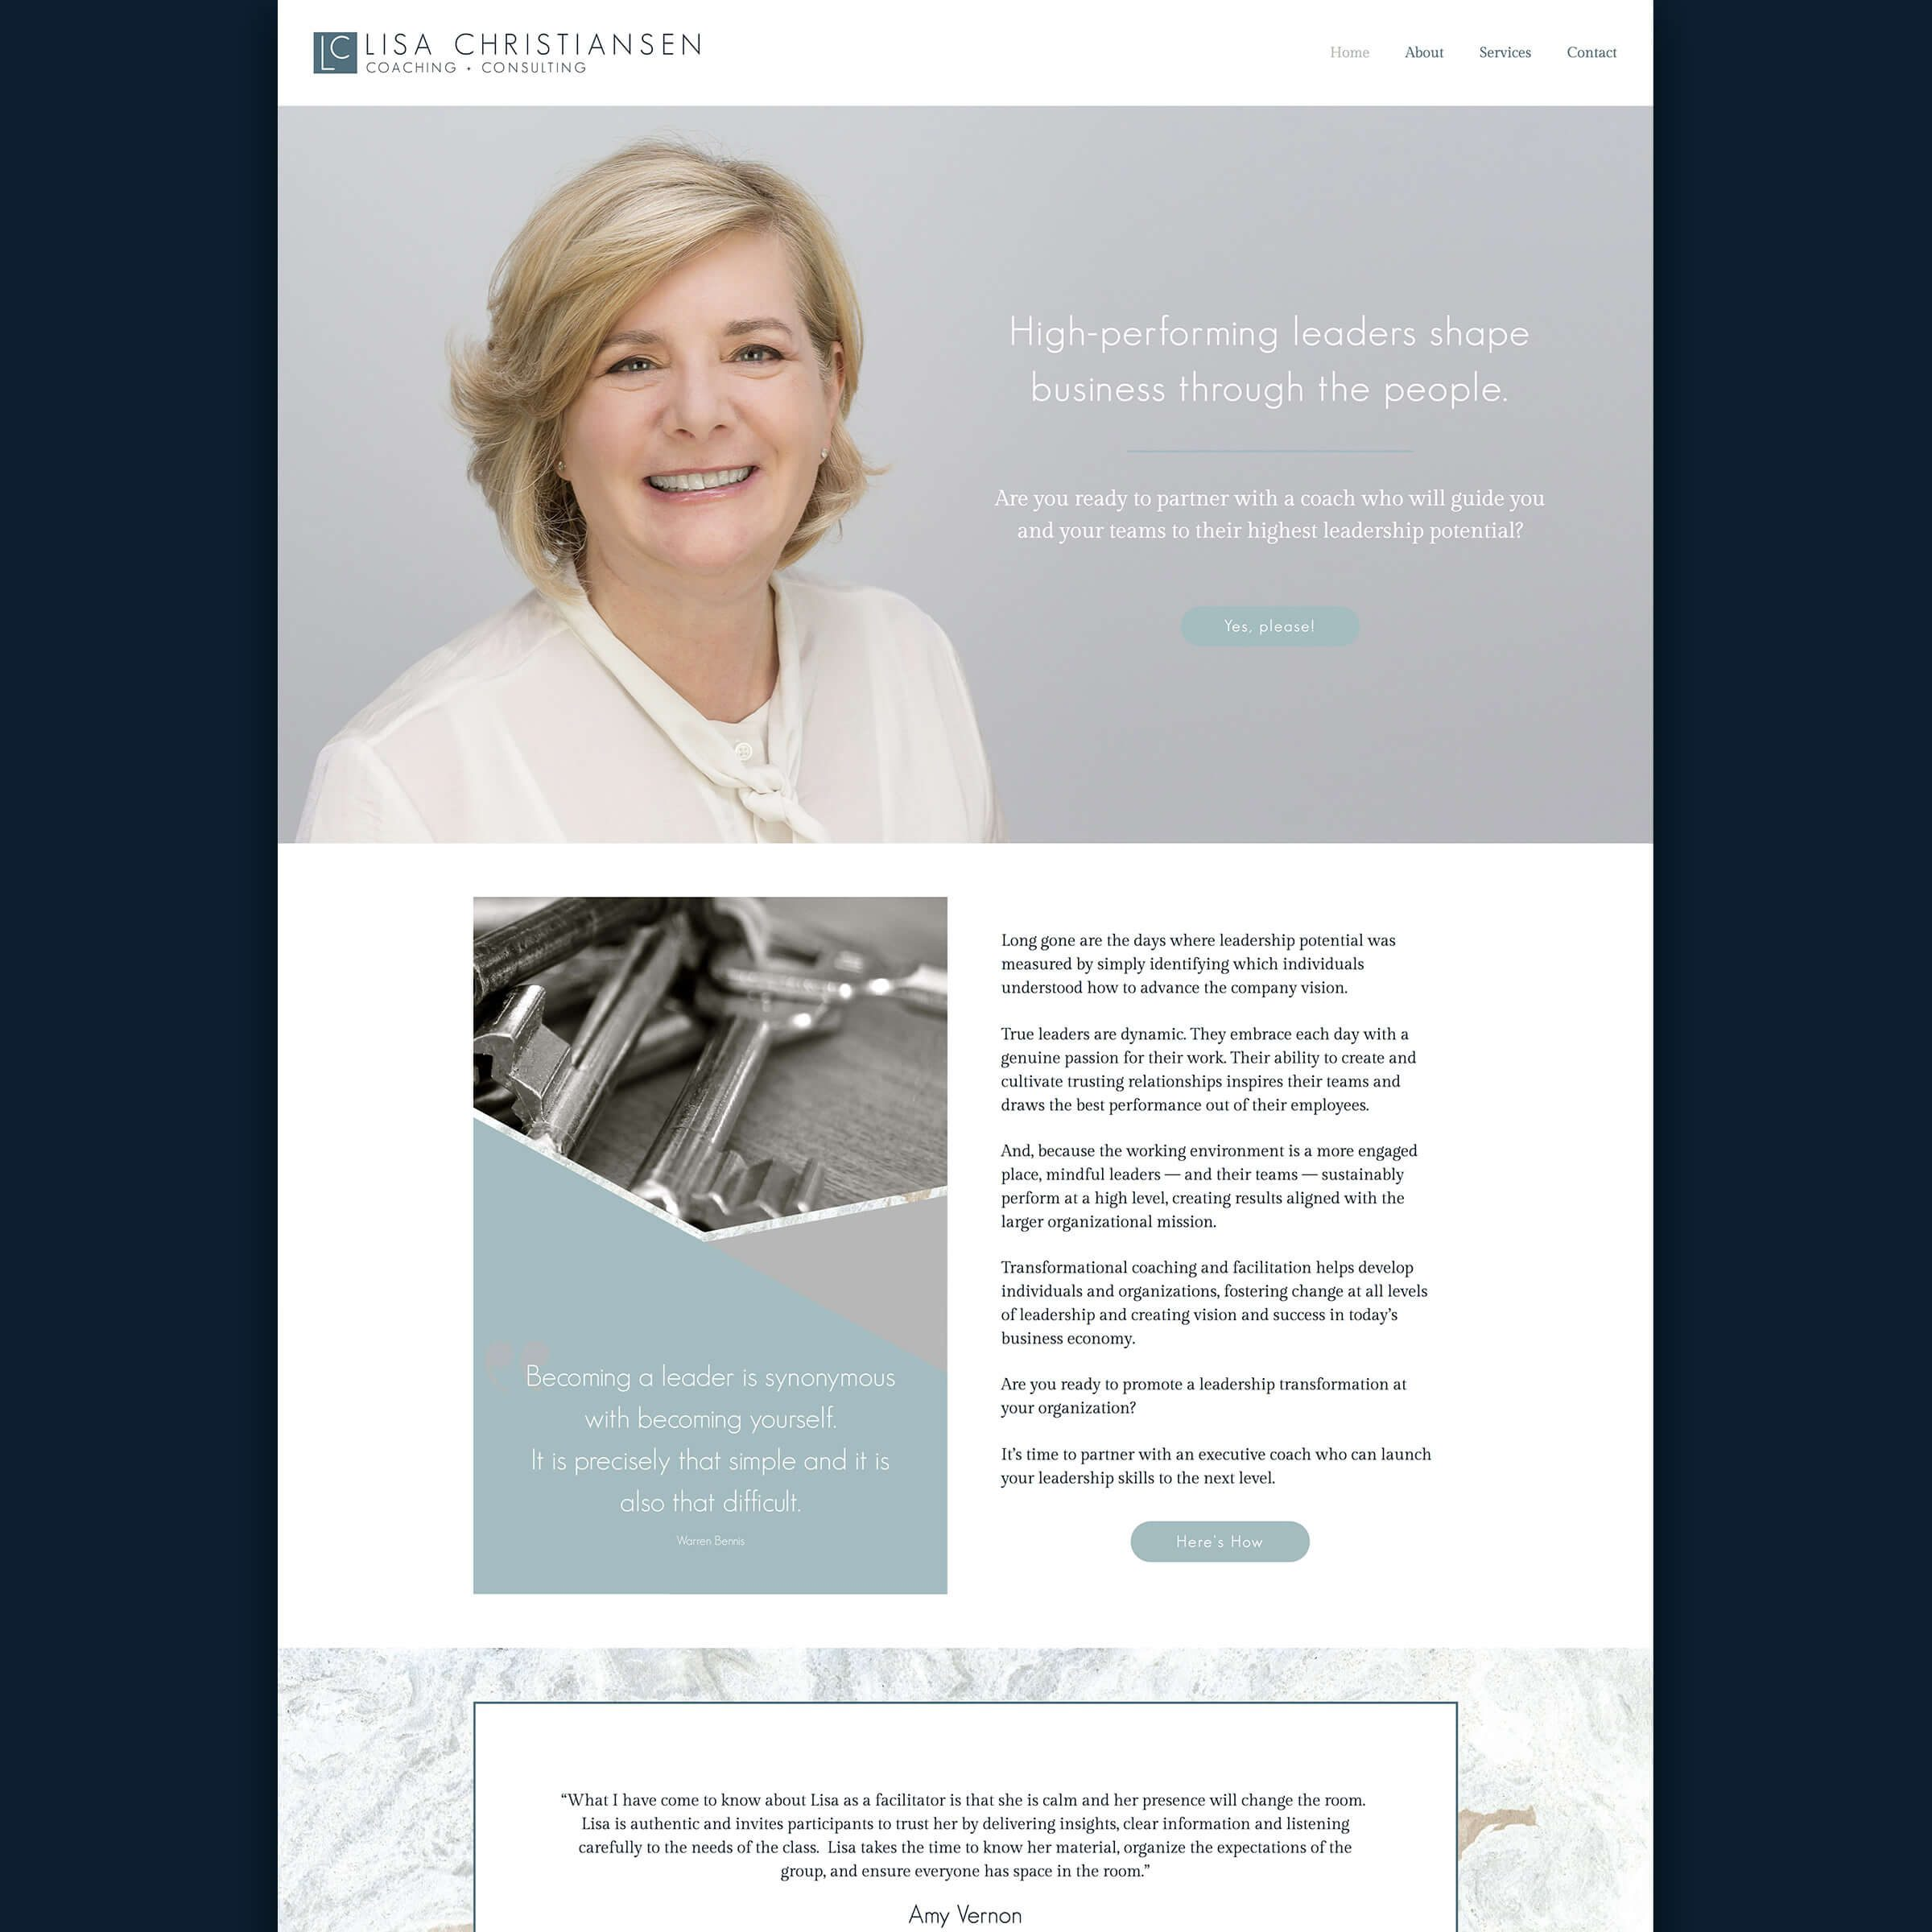 Lisa Christiansen Coach Consultant - Client Feature Website Design Portfolio